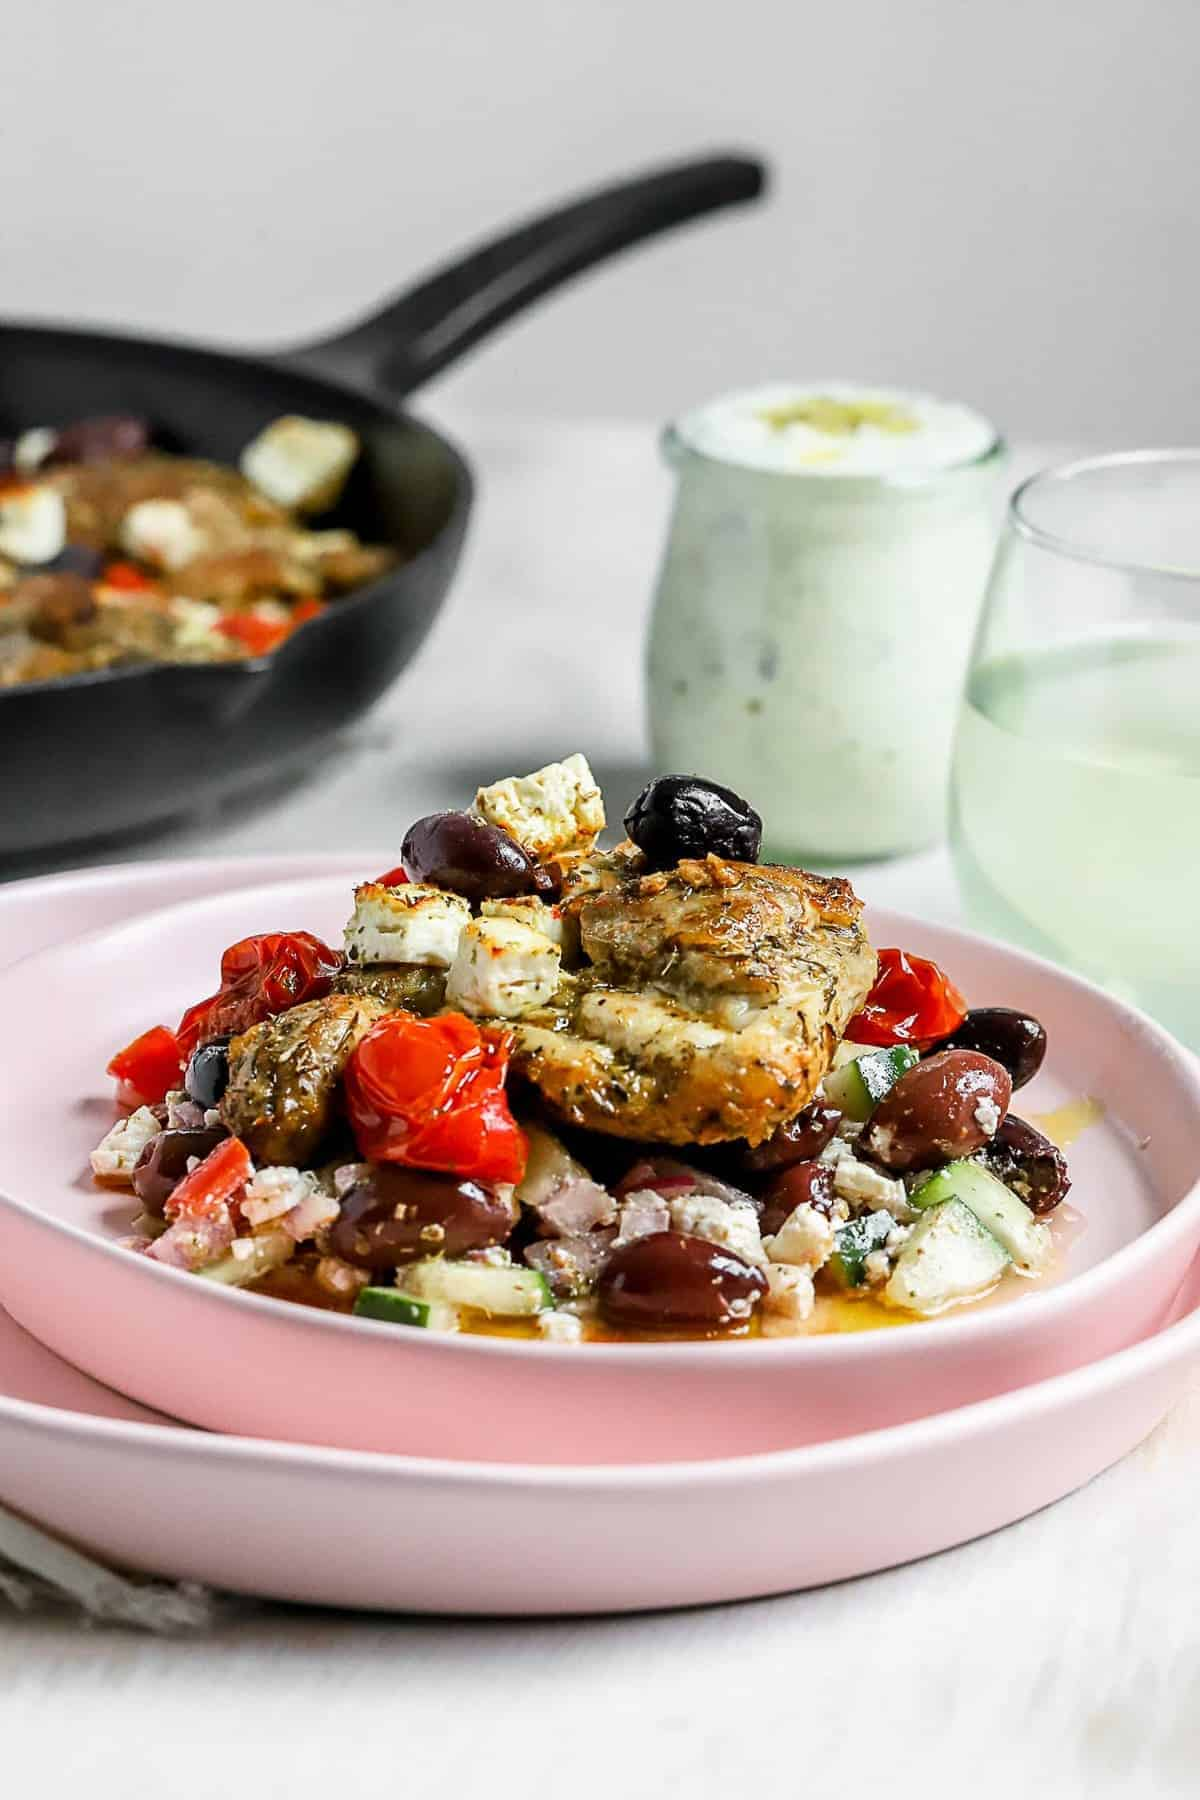 A greek chicken skillet meal served on a table